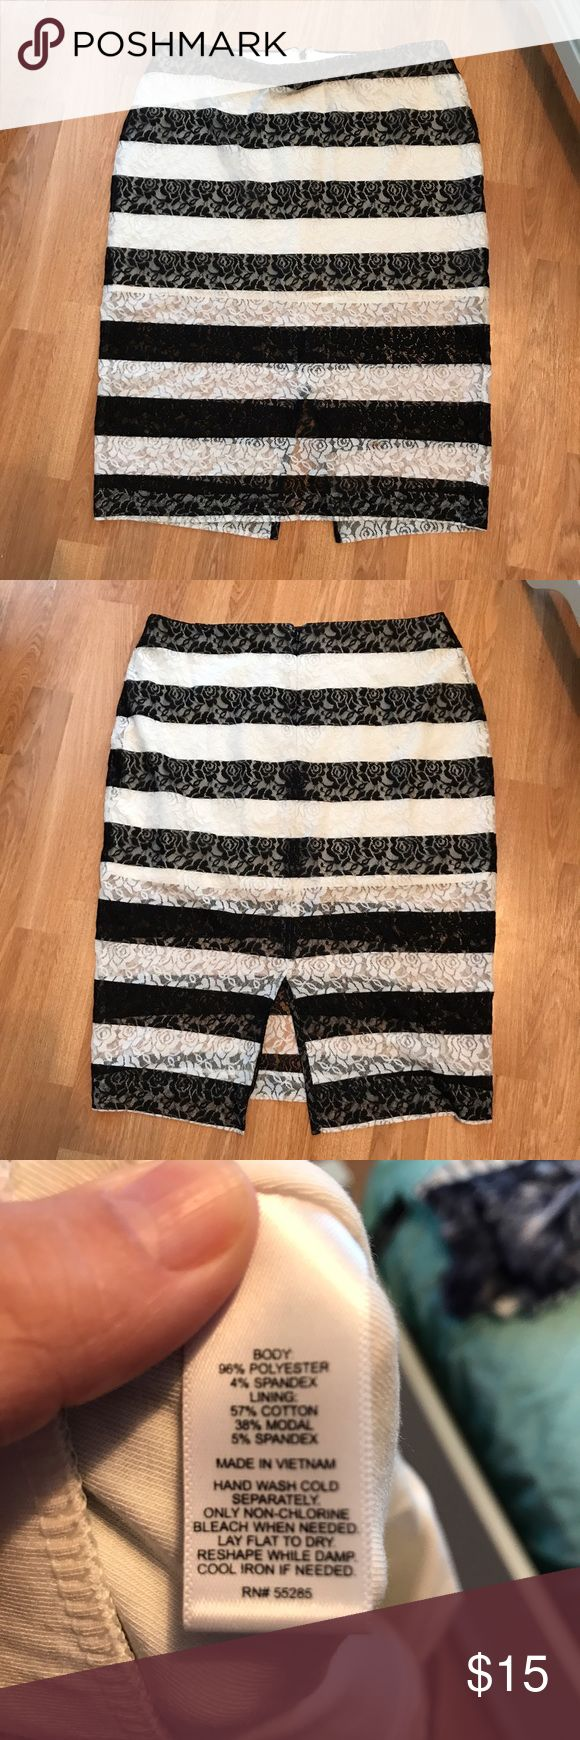 Black and white stripe lace pencil skirt. Black and white stripe pencil skirt. Lace with white shell underneath. Zipper in back. Express Skirts Pencil